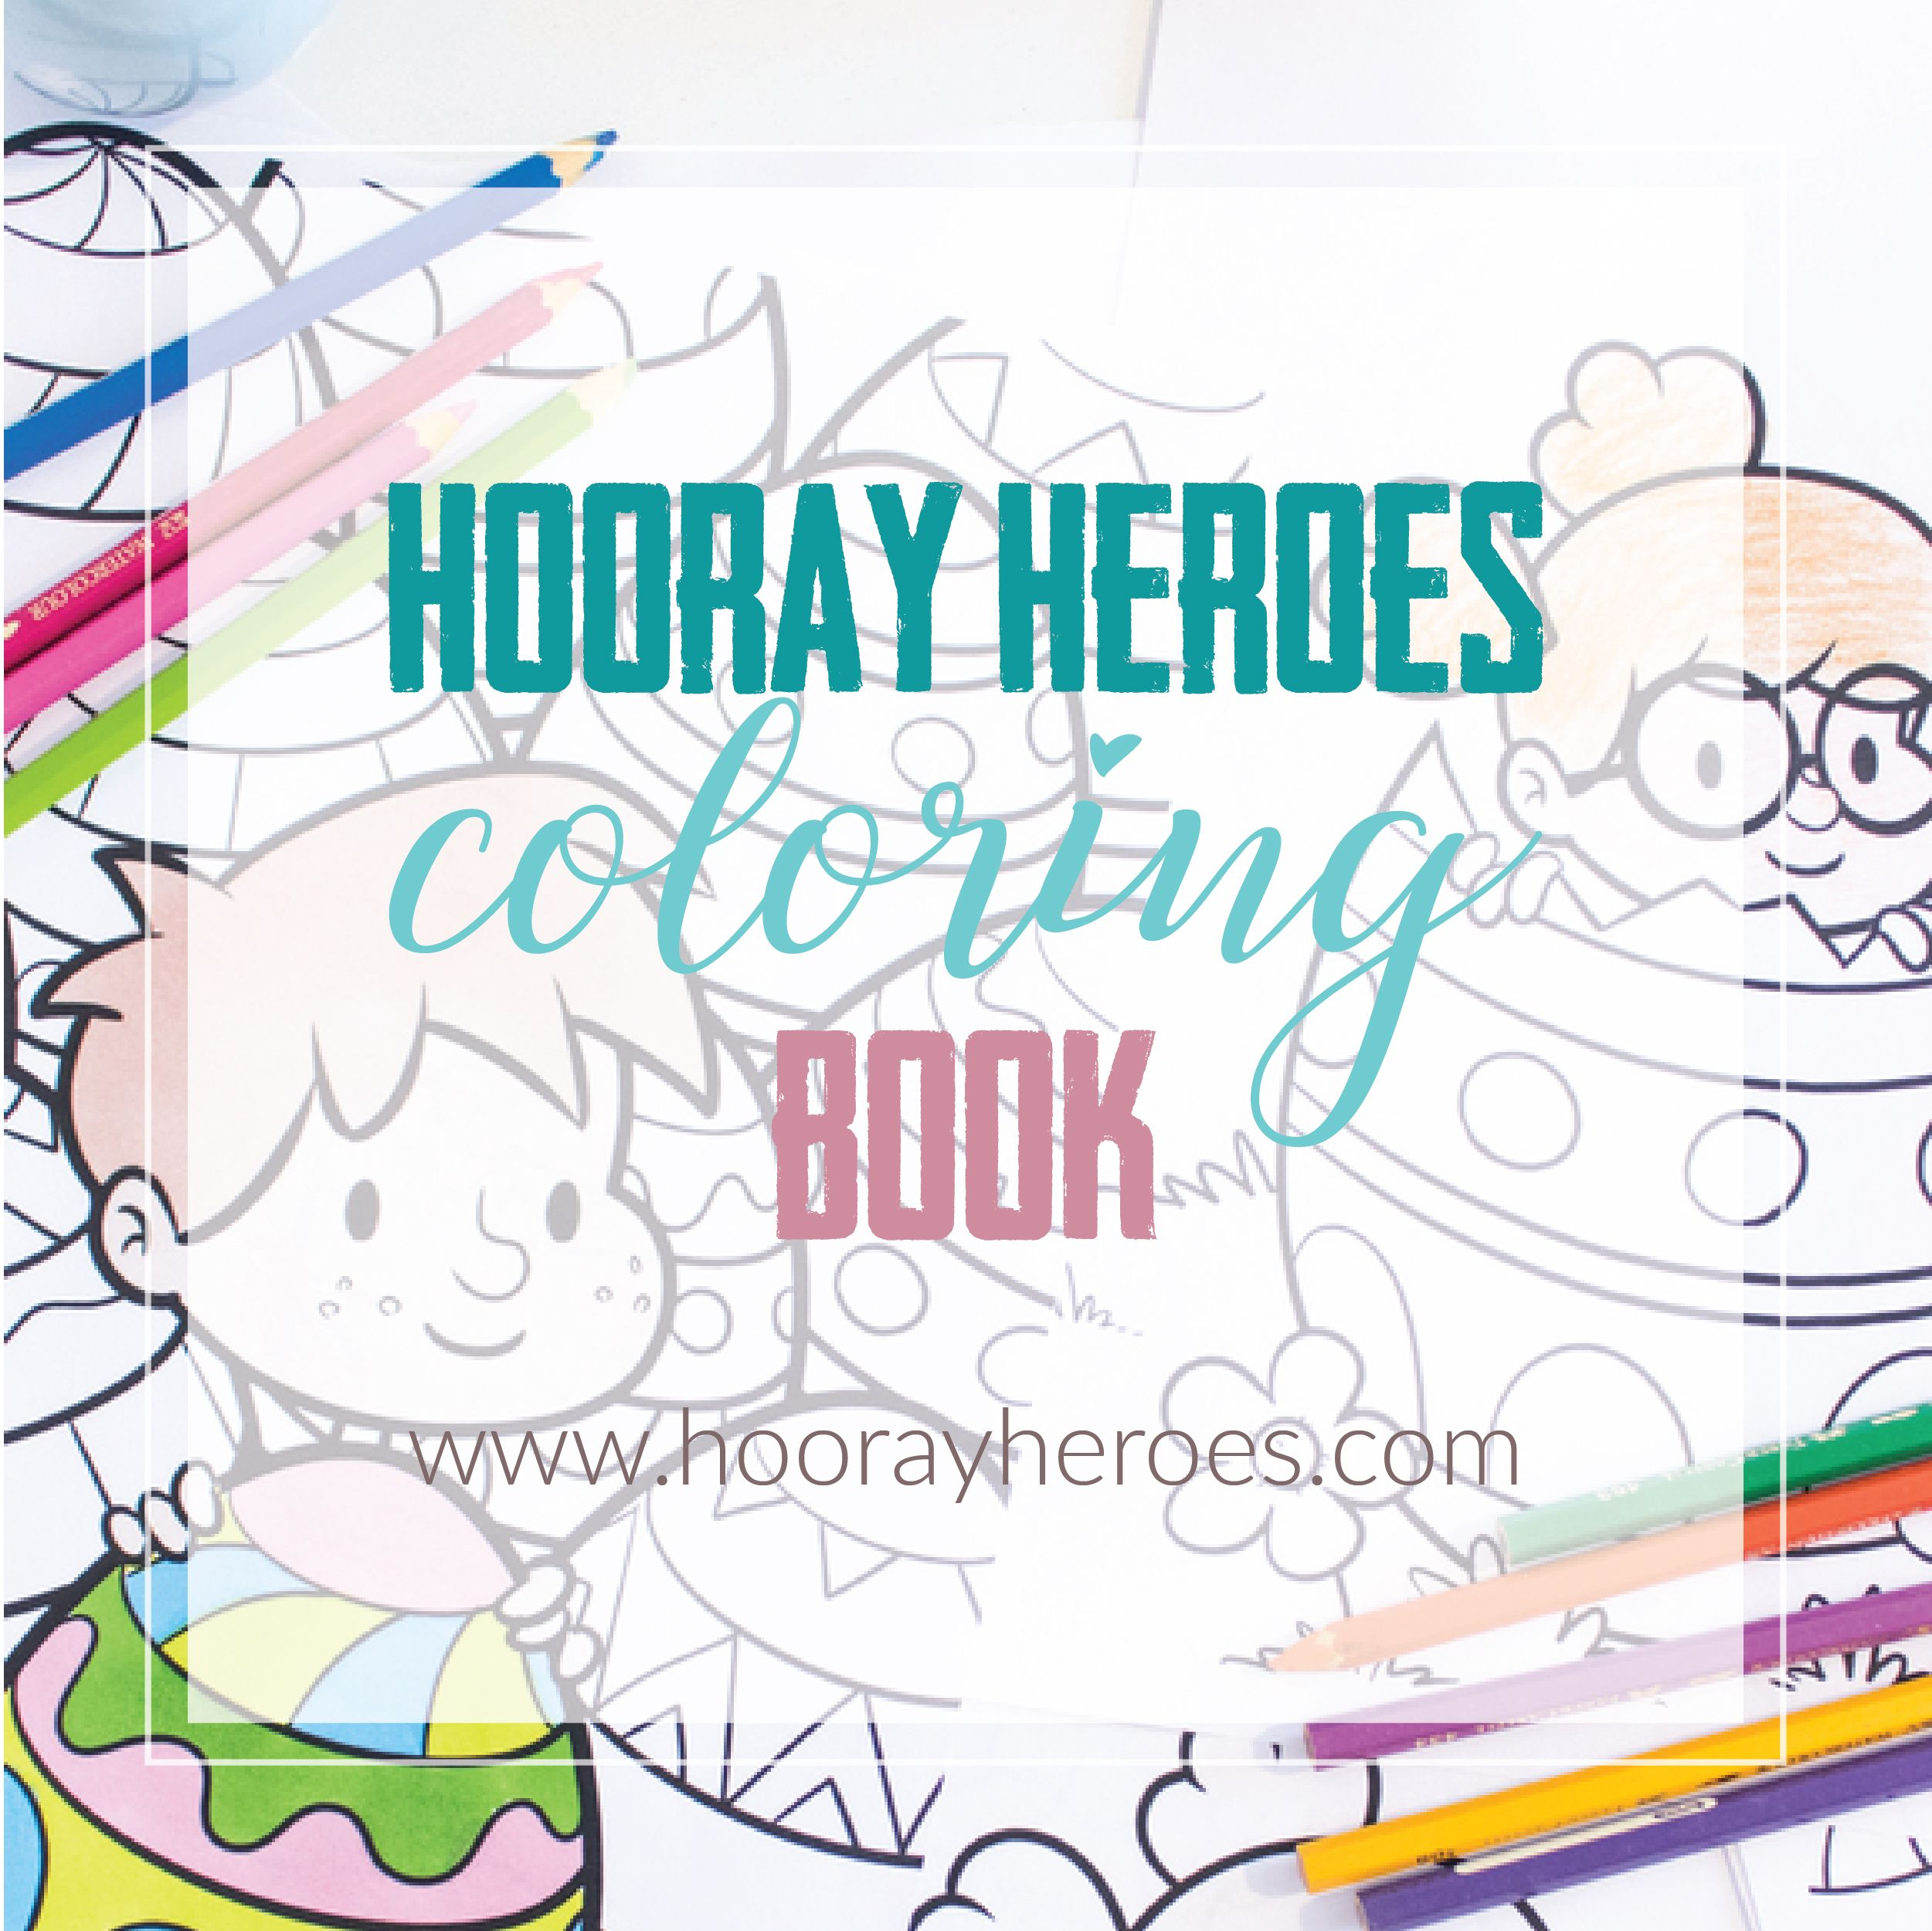 Hooray Heroes Free Personalized Coloring Books Personalized Books For Kids Personalized Coloring Book Personalized Books